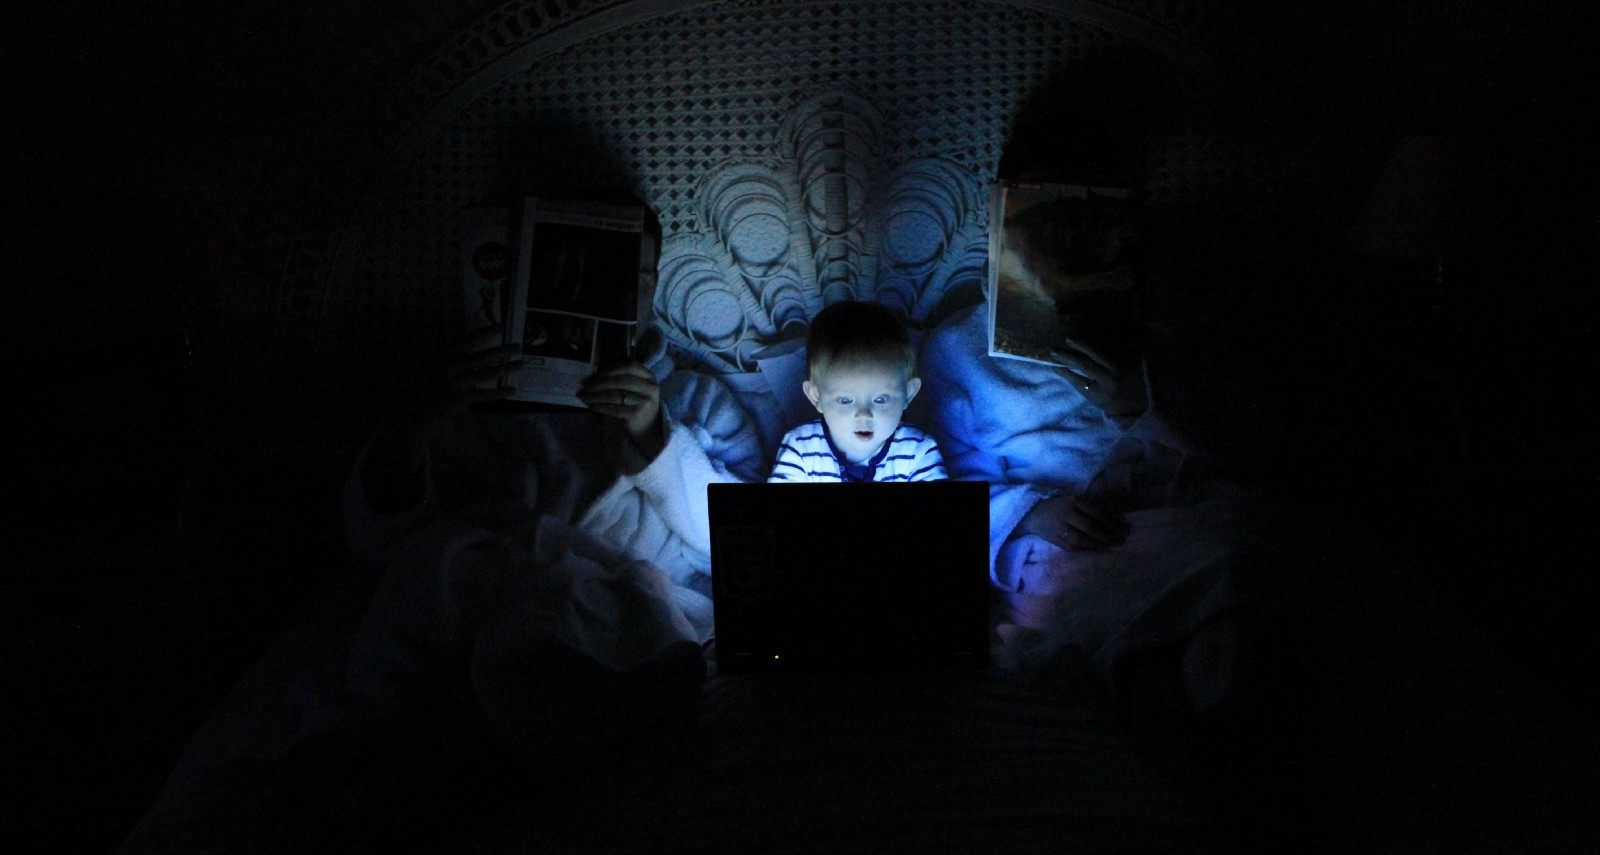 Captivating Is Blue Light Destroying Your Sleep? No, But Worrying About It Is.